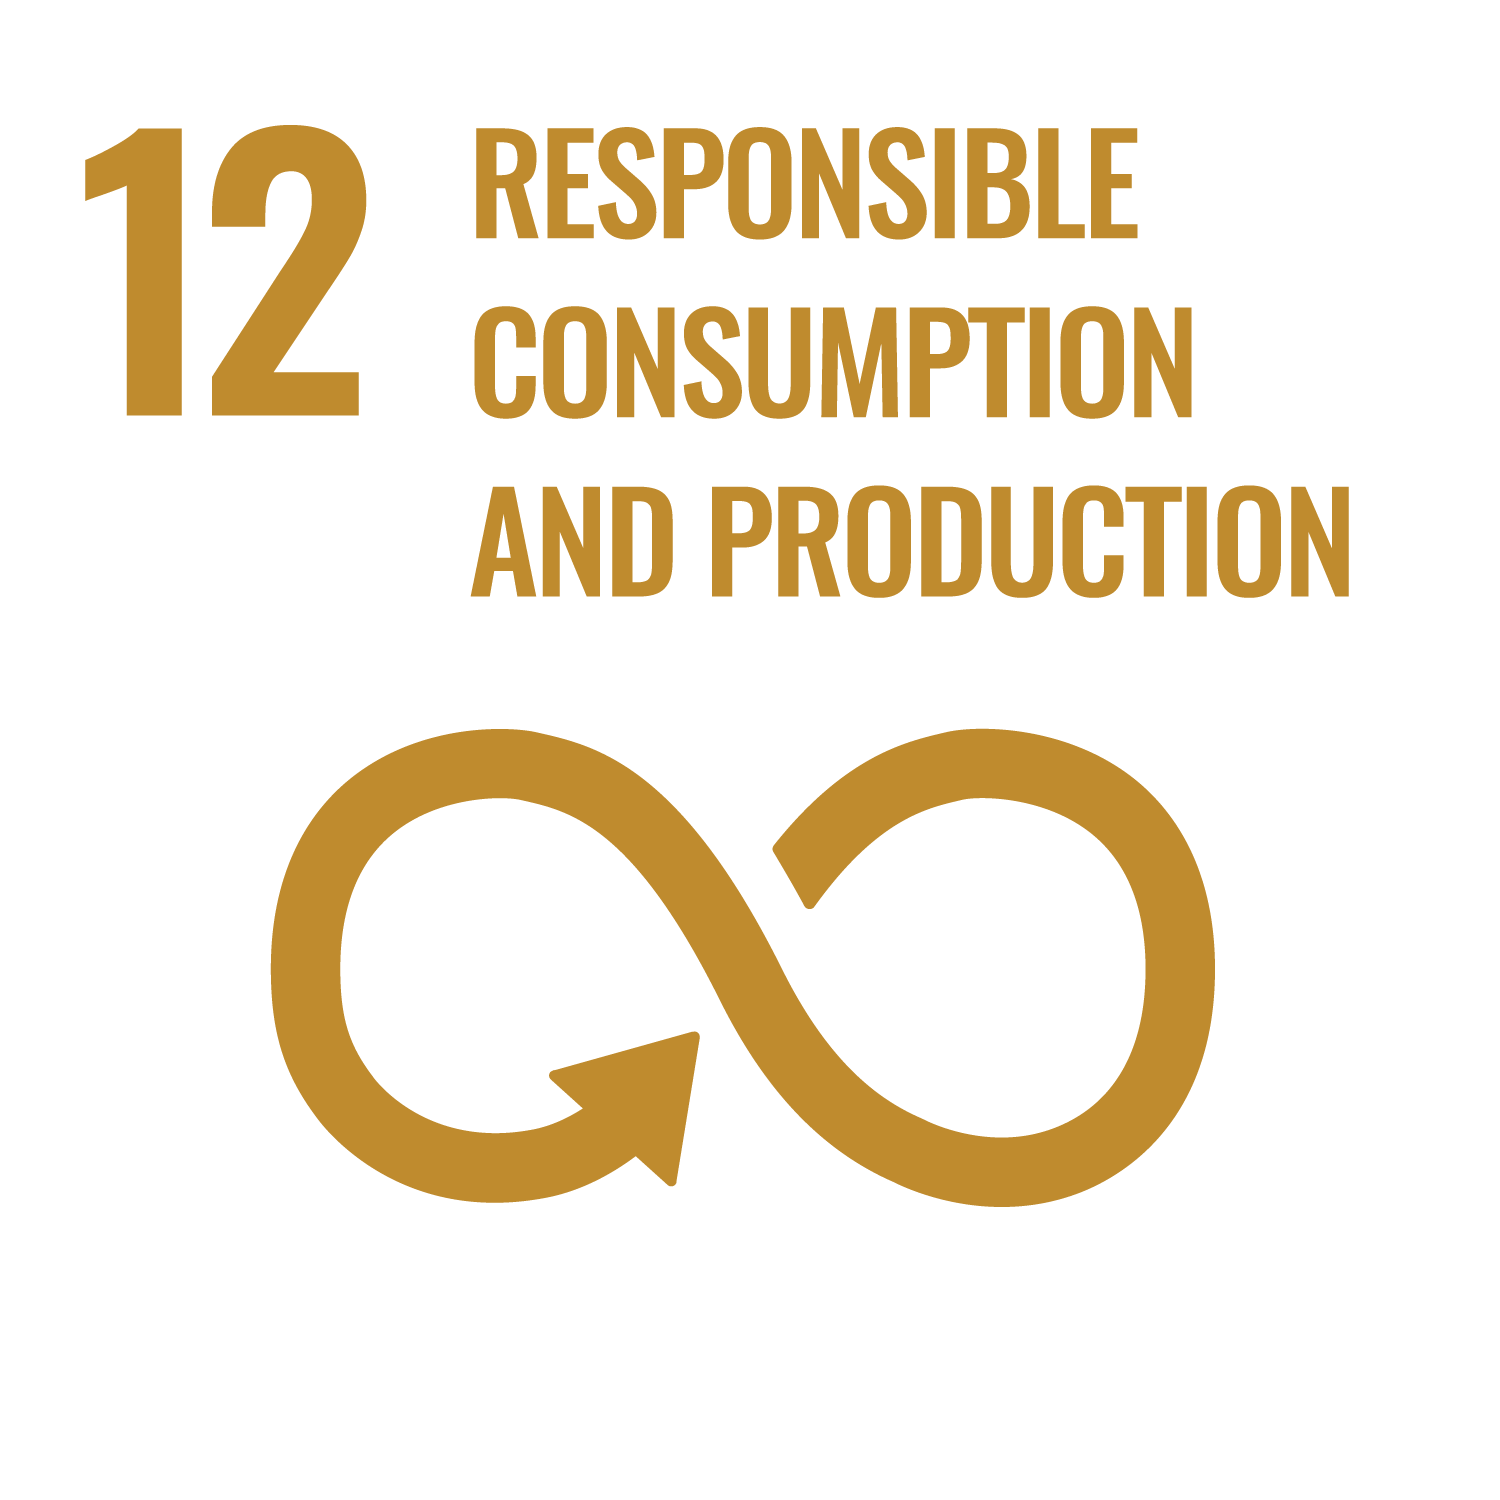 SDG12-sustainable consumption